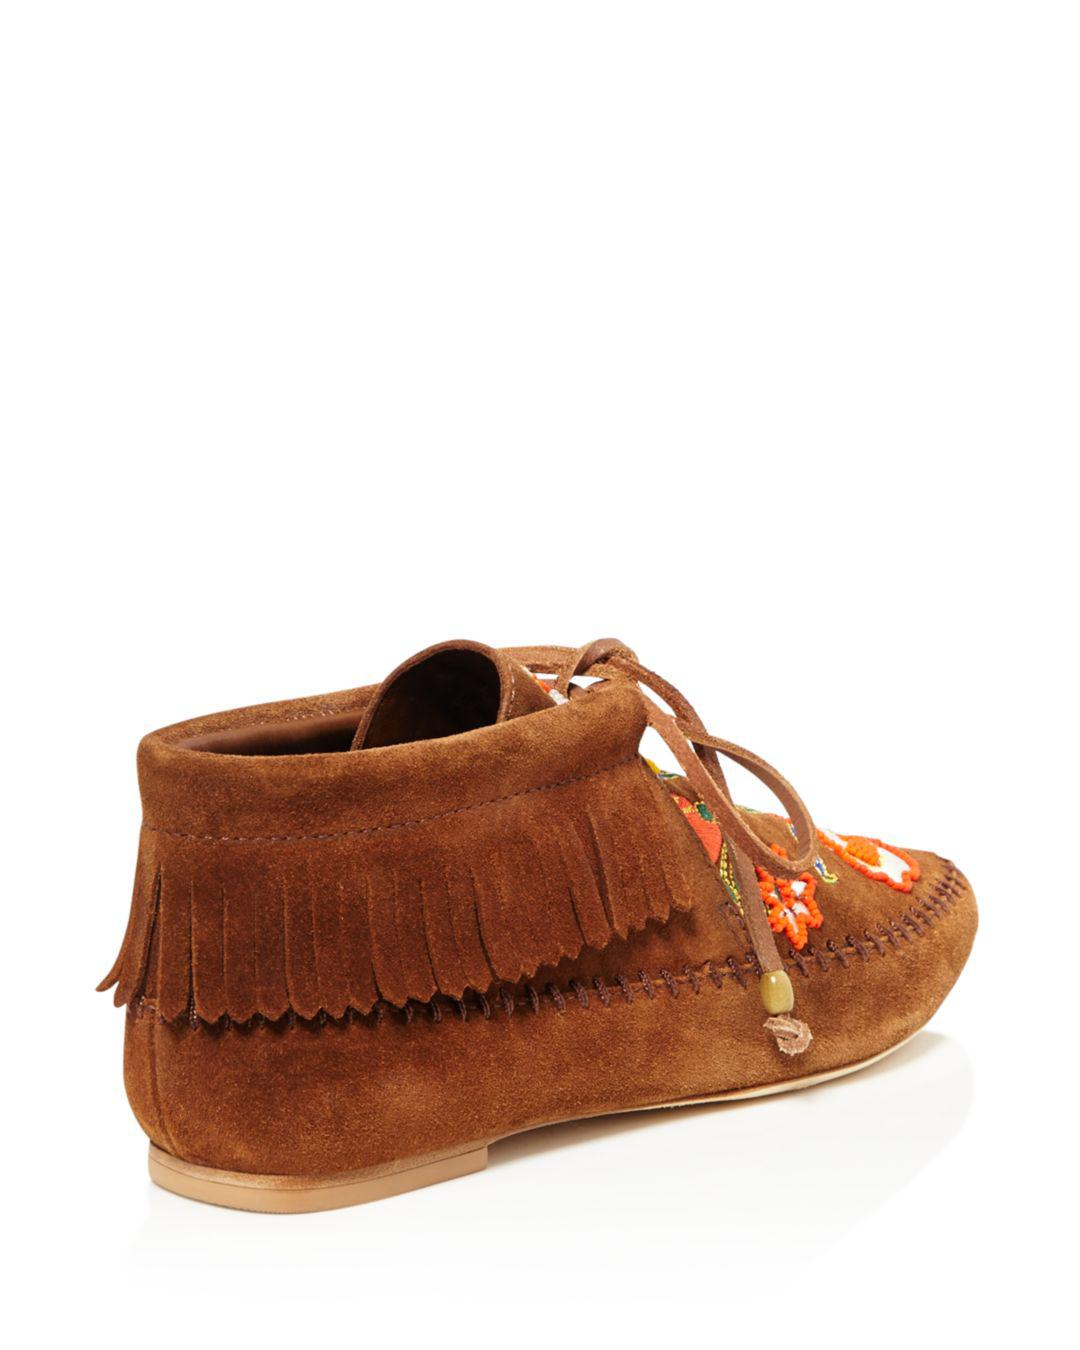 3e98495fd36 Lyst - Tory Burch Huntington Bead Embroidered Fringe Booties in Brown